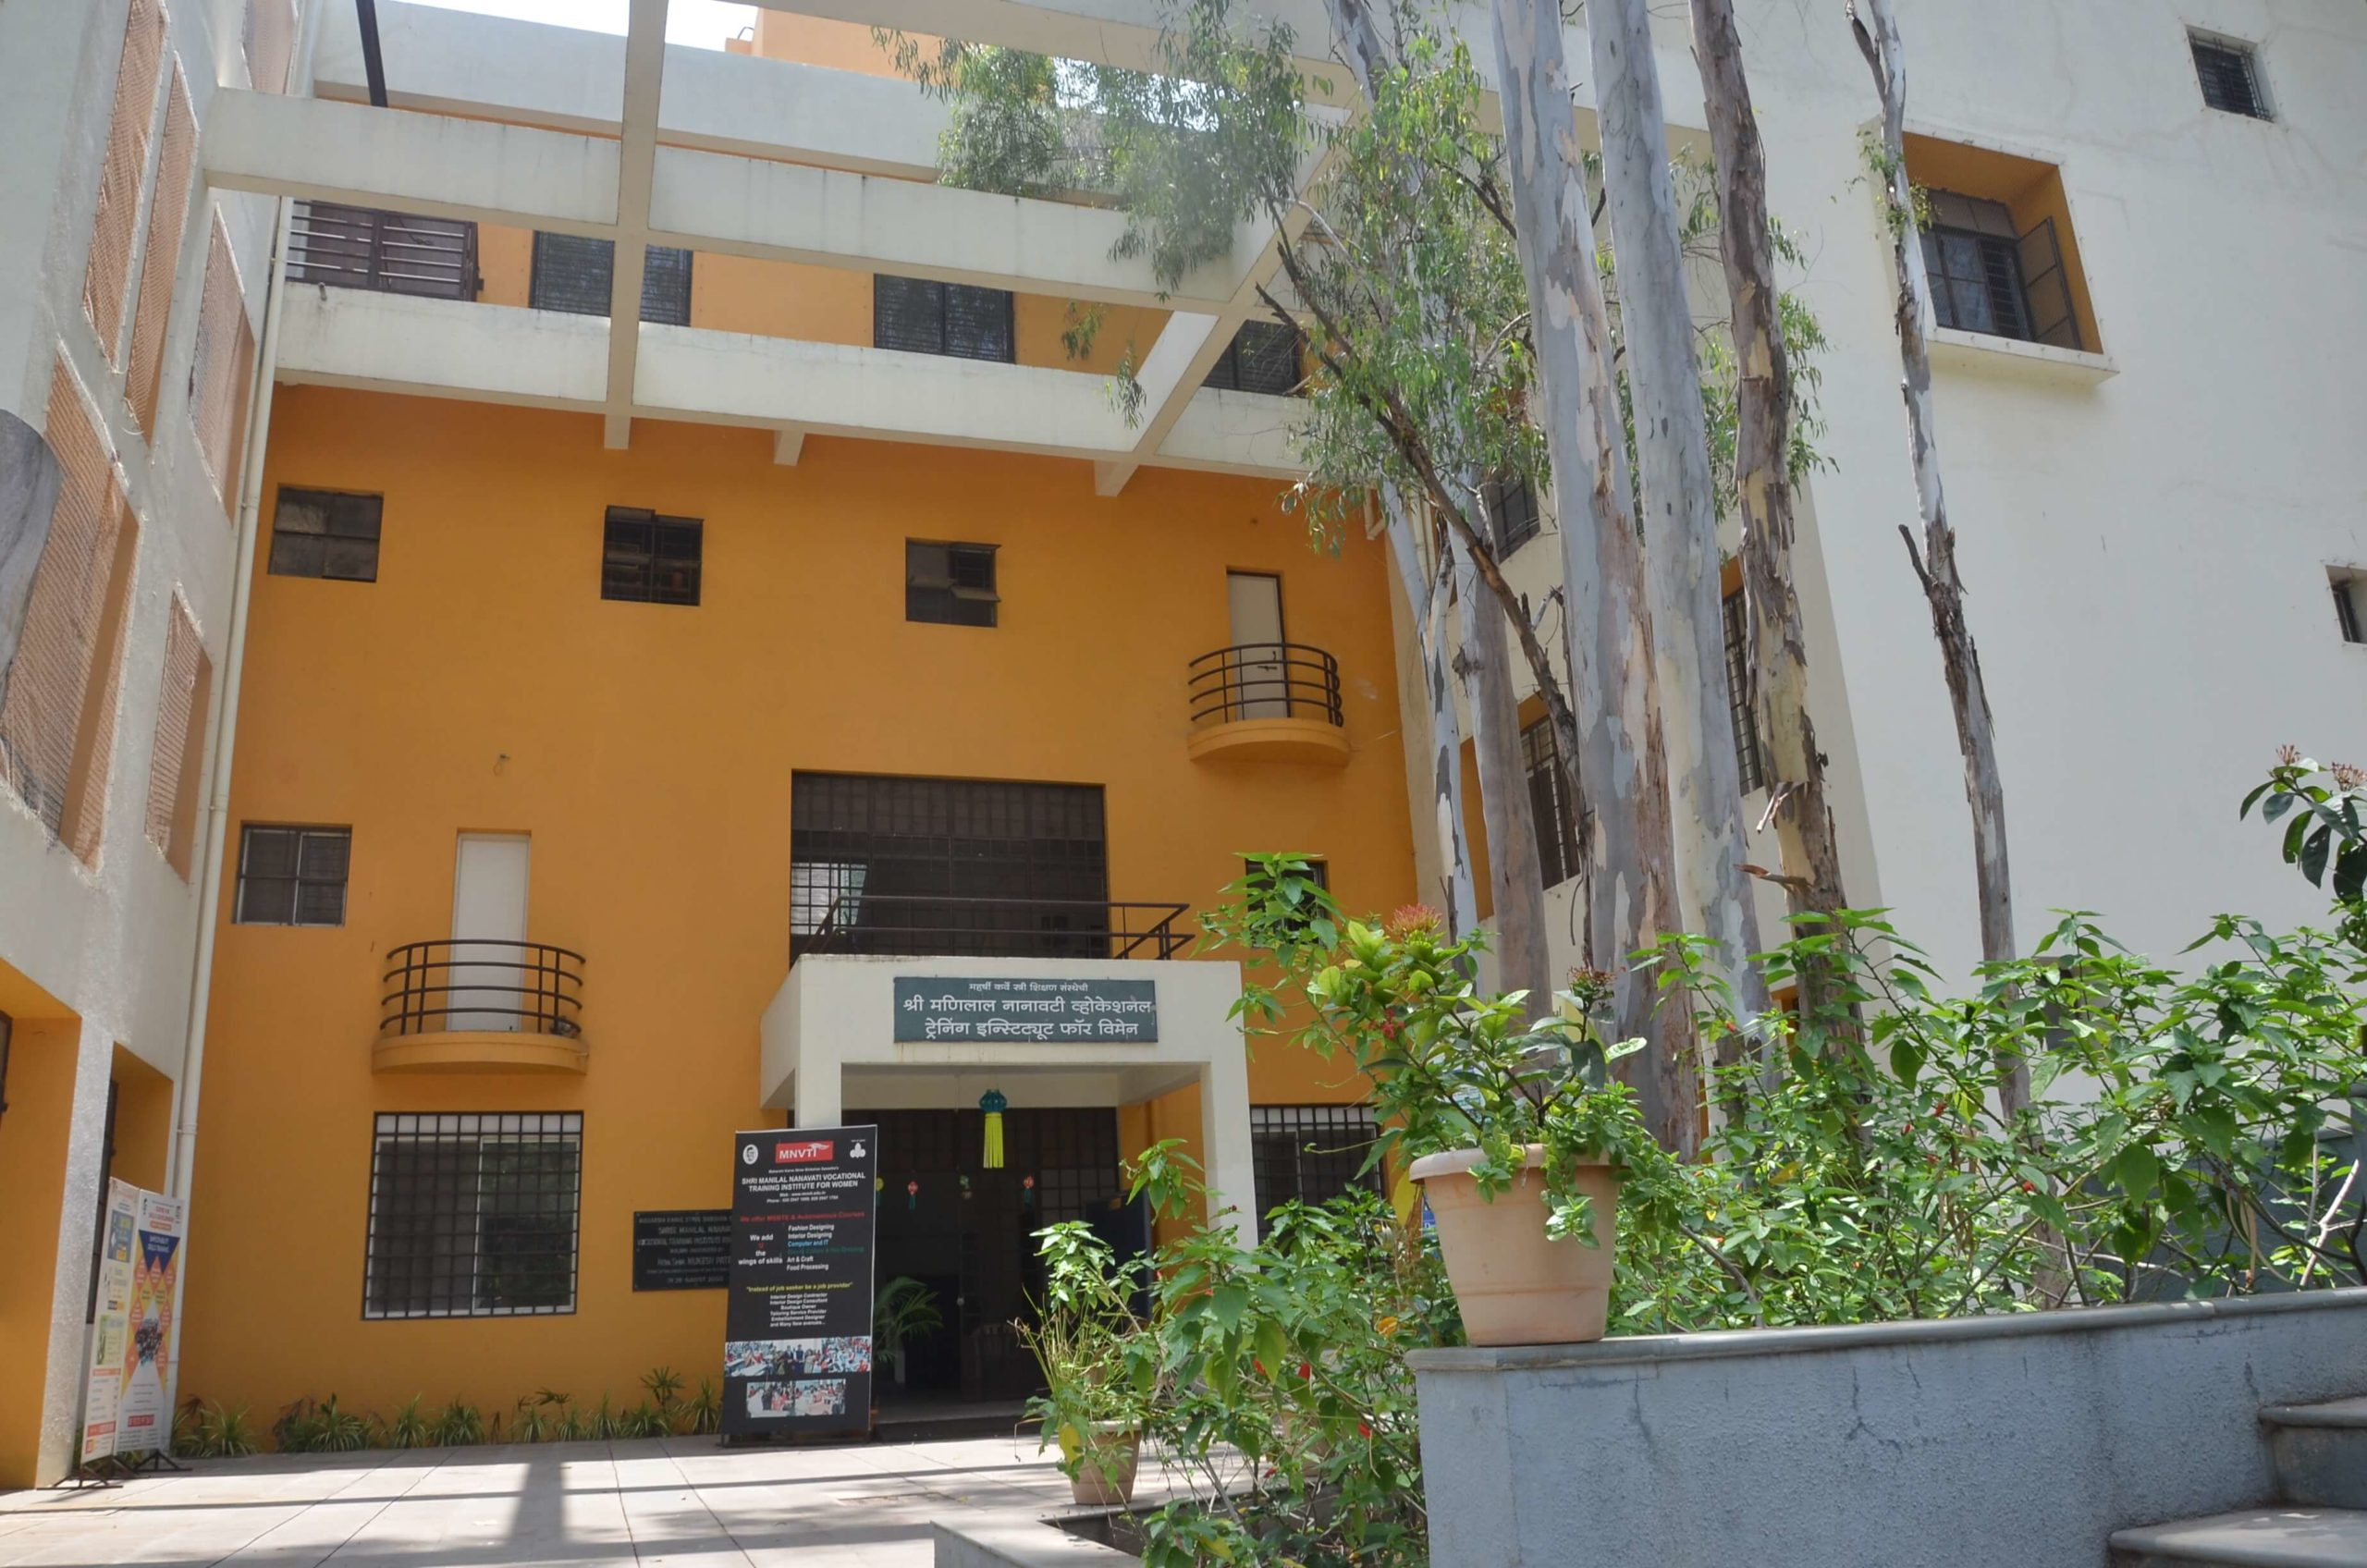 Beautiful Campus of MNVTI. Staff at MNVTI. MNVTI is a Vocational Skills College. MNVTI is a vocational institute for Fashion Designing, Interior Designing, Beauty Parlour and Make Up Course